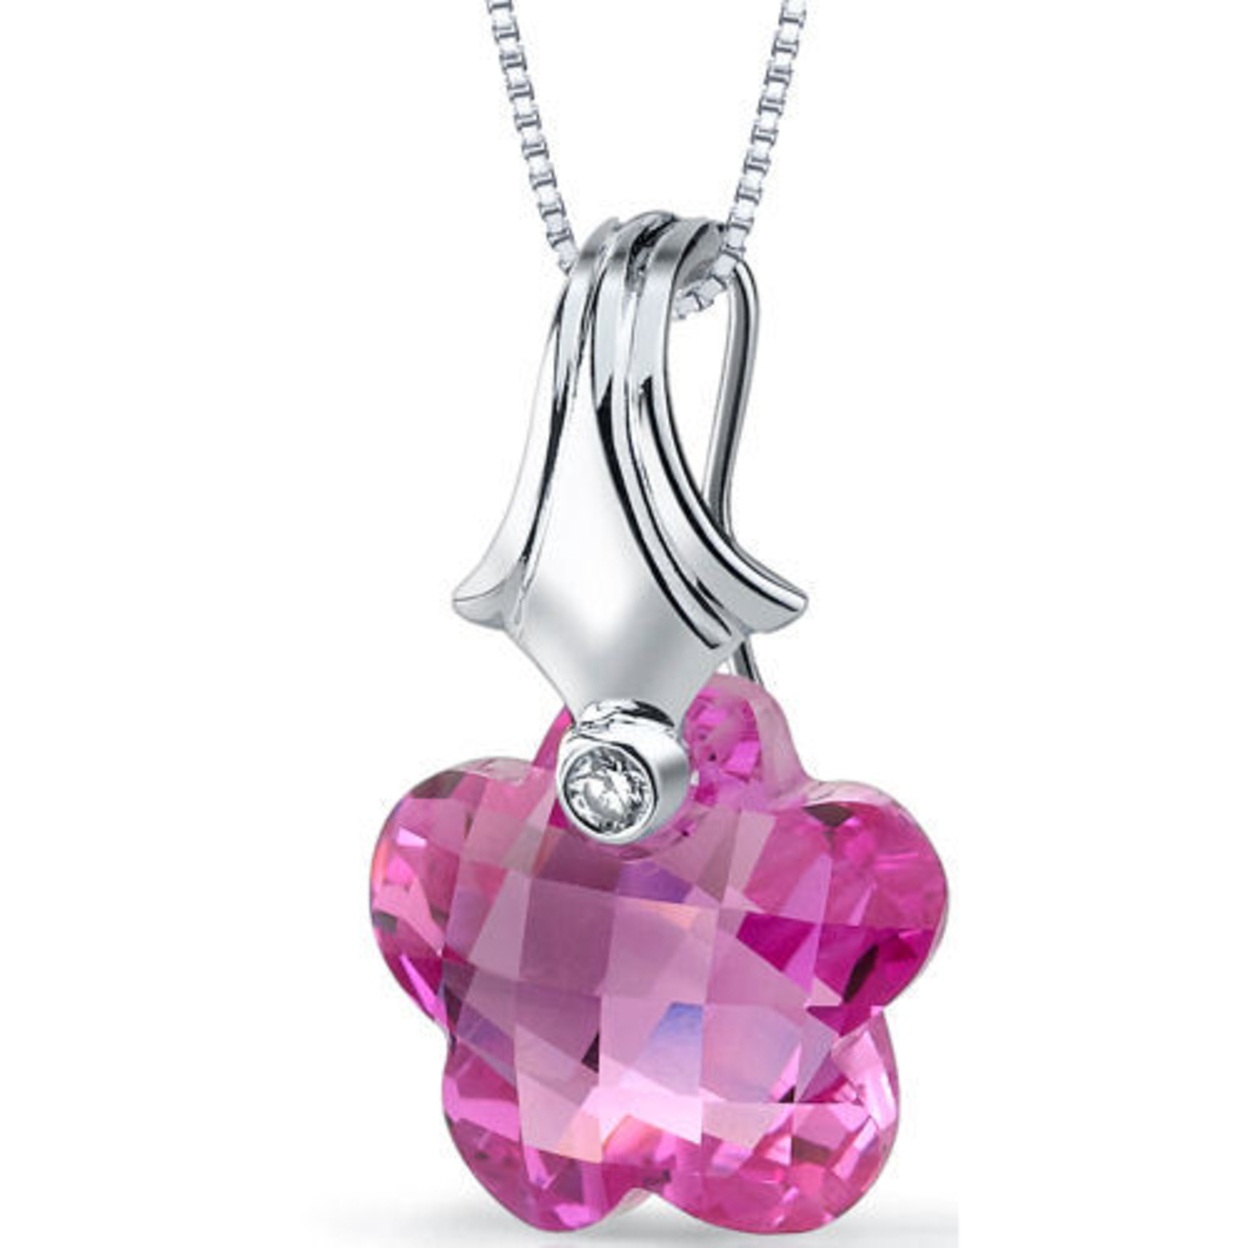 Oravo 16.00 Carat T.g.w. Flower Cut Created Pink Sapphire Rhodium Over Sterling Silver Pendant, 18""